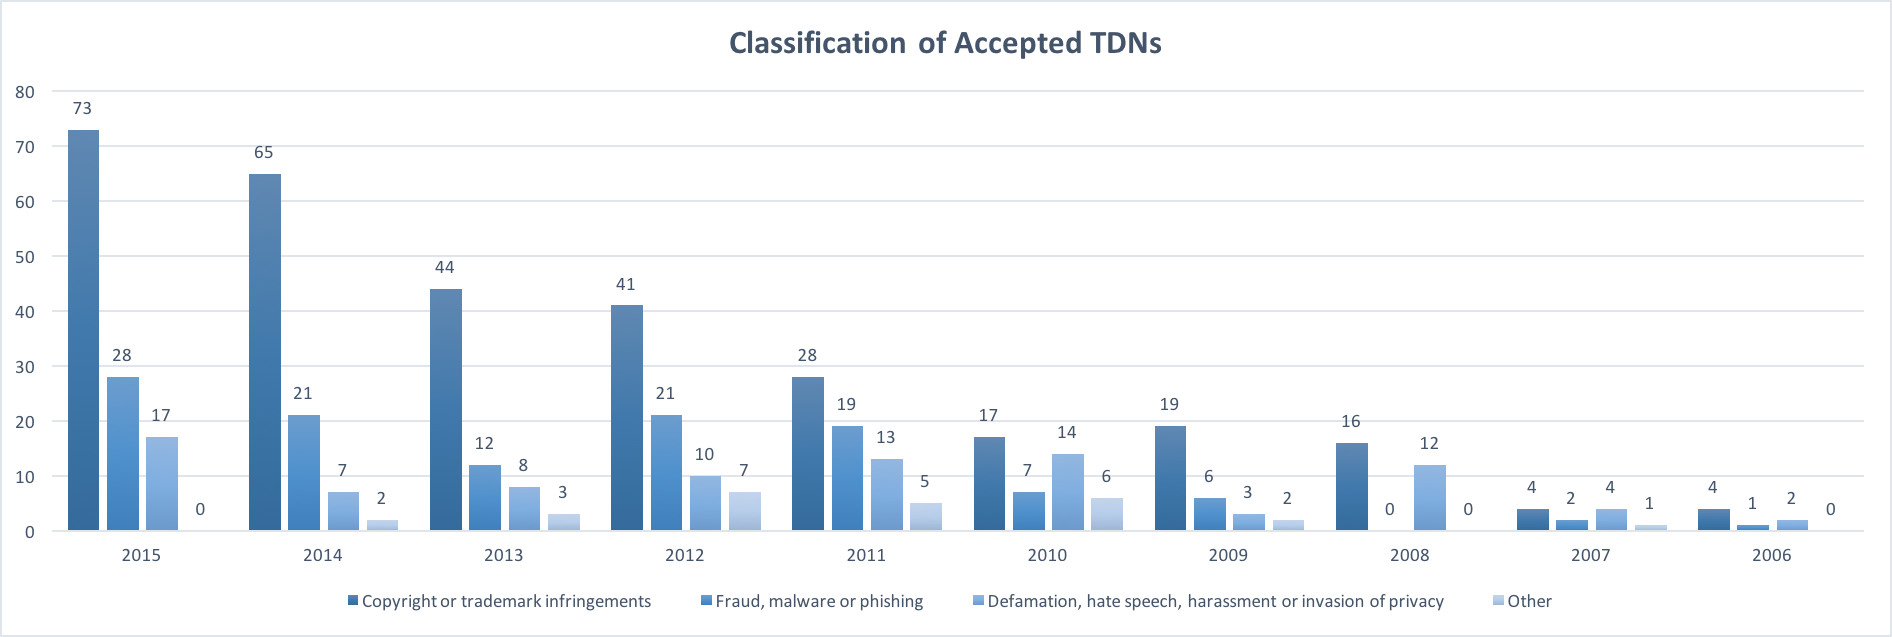 Takedown notices (TDN) acted upon by ISPA timeline (ISPA).